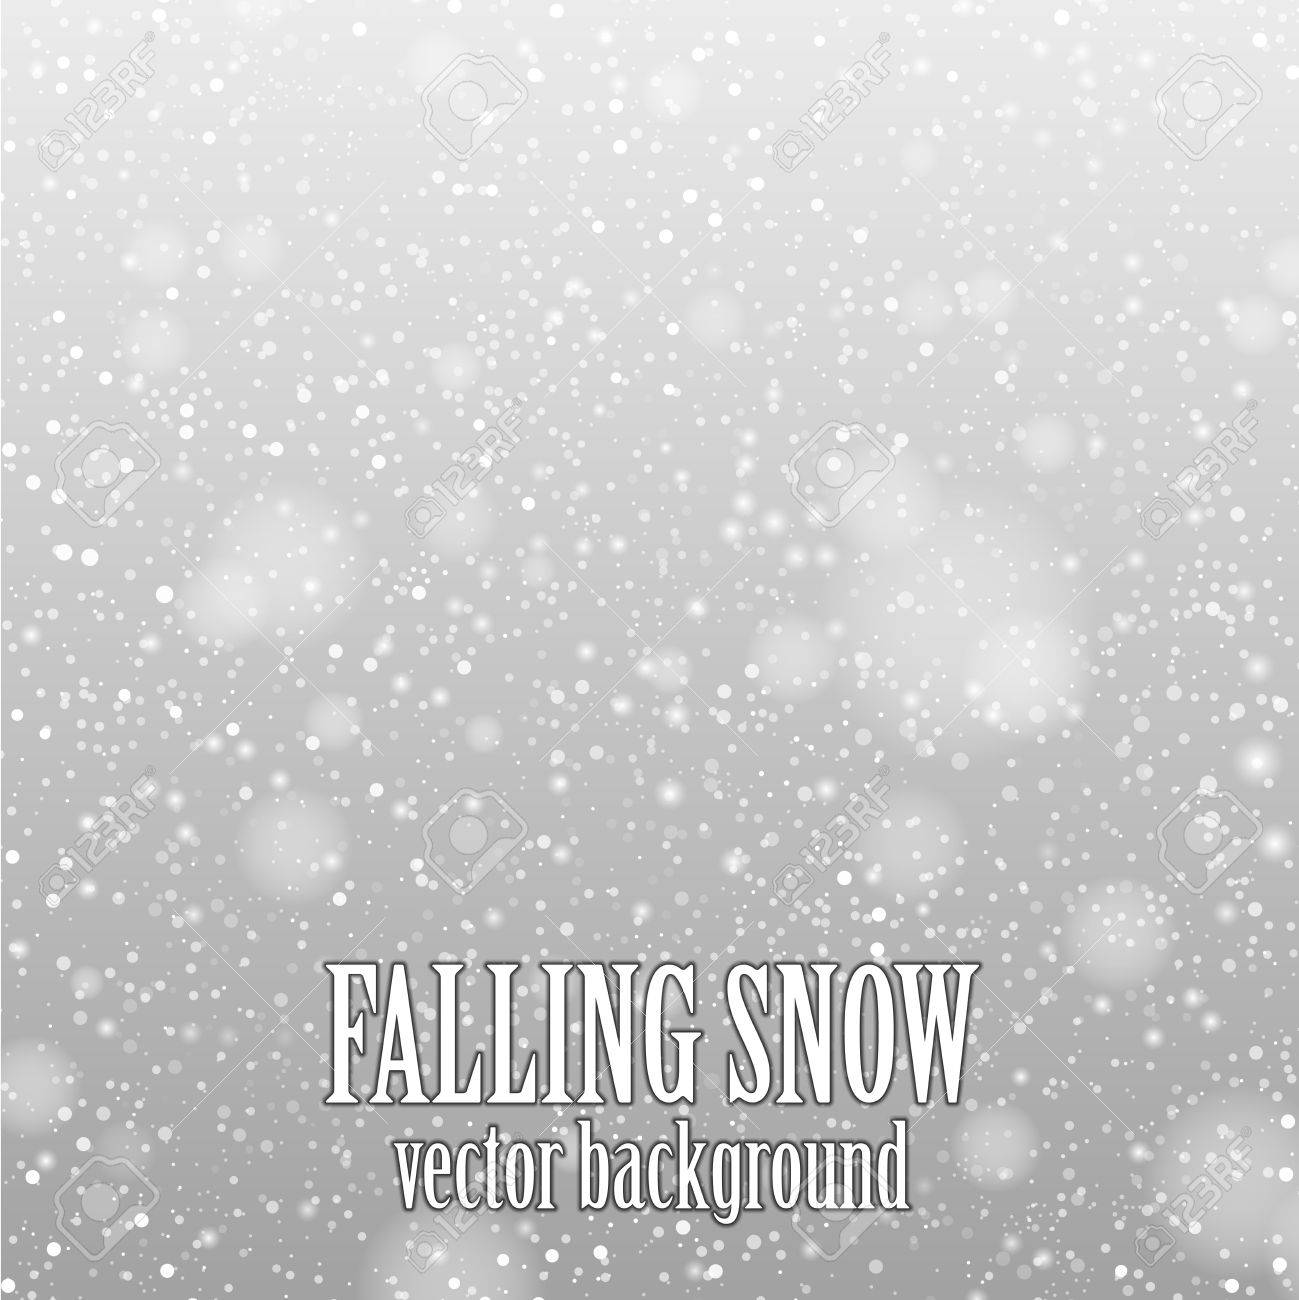 falling snow on the gray - vector image - 23013775